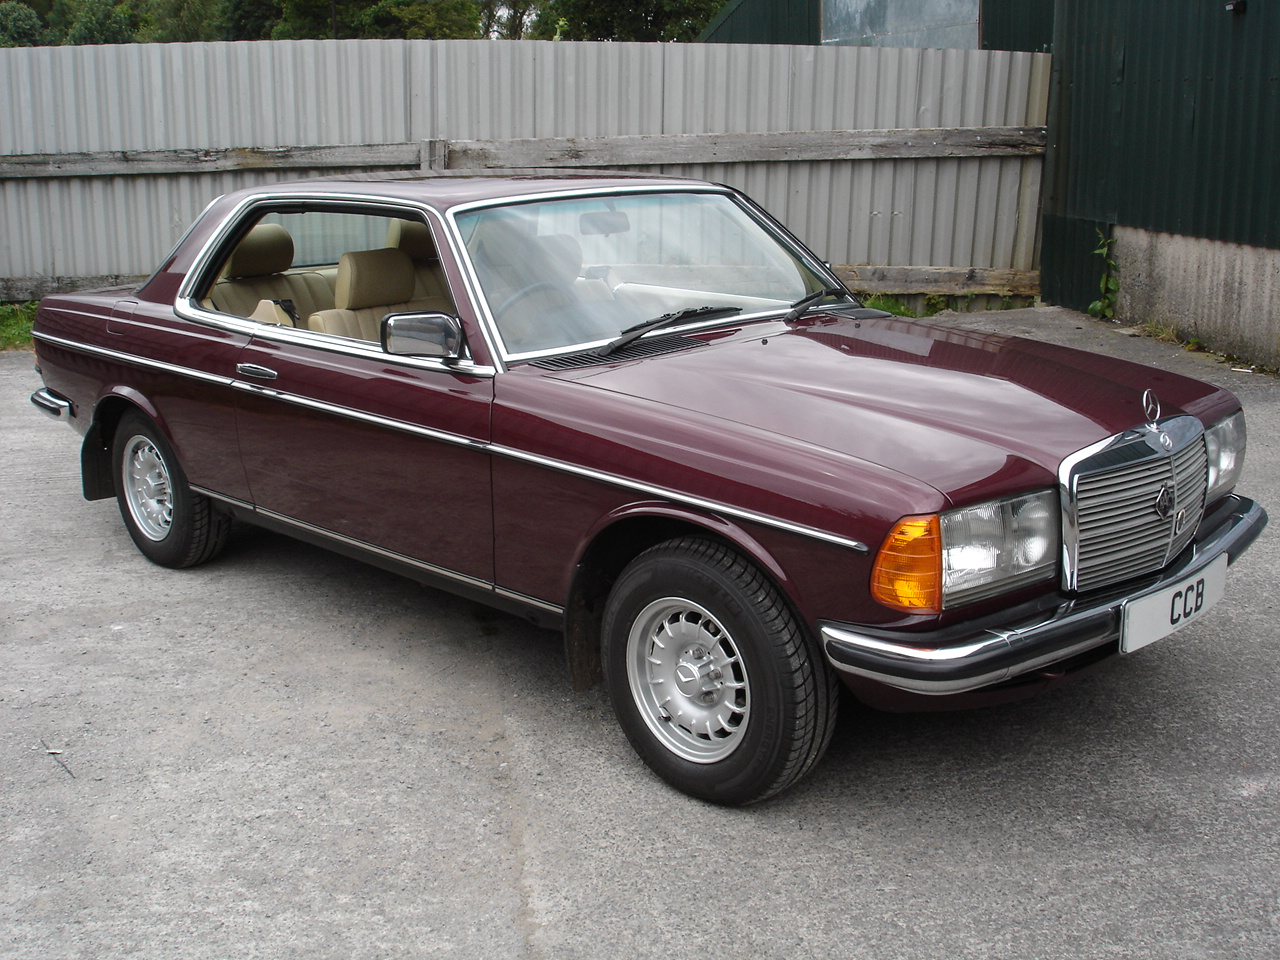 230ce Coupe 2 3 Litre 1985b Sold Cheshire Classic Benz